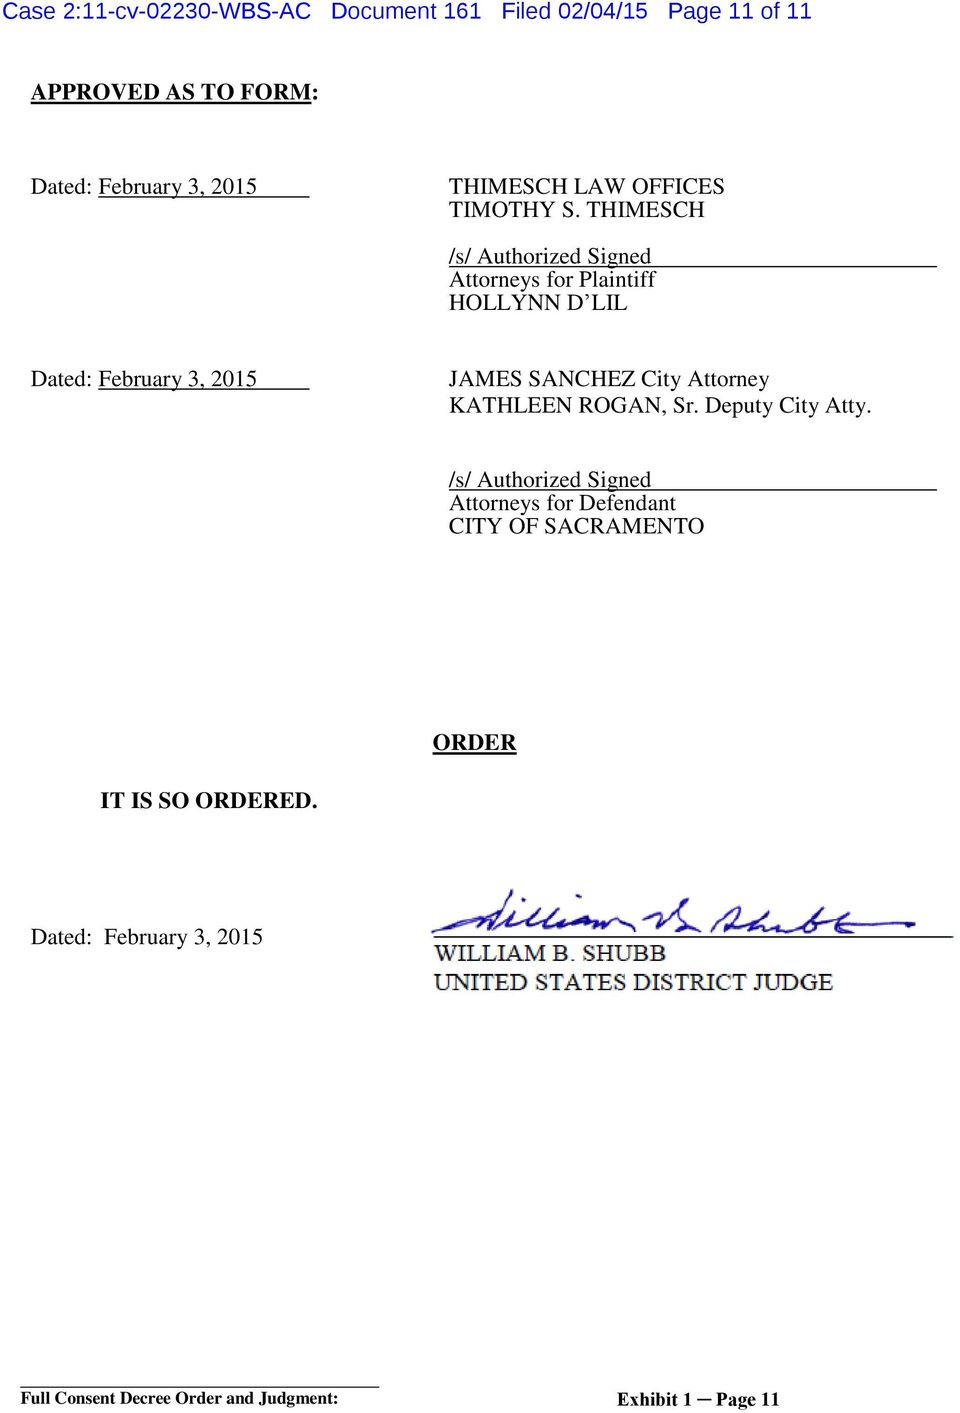 THIMESCH /s/ Authorized Signed Attorneys for Plaintiff HOLLYNN D LIL Dated: February 3, 2015 JAMES SANCHEZ City